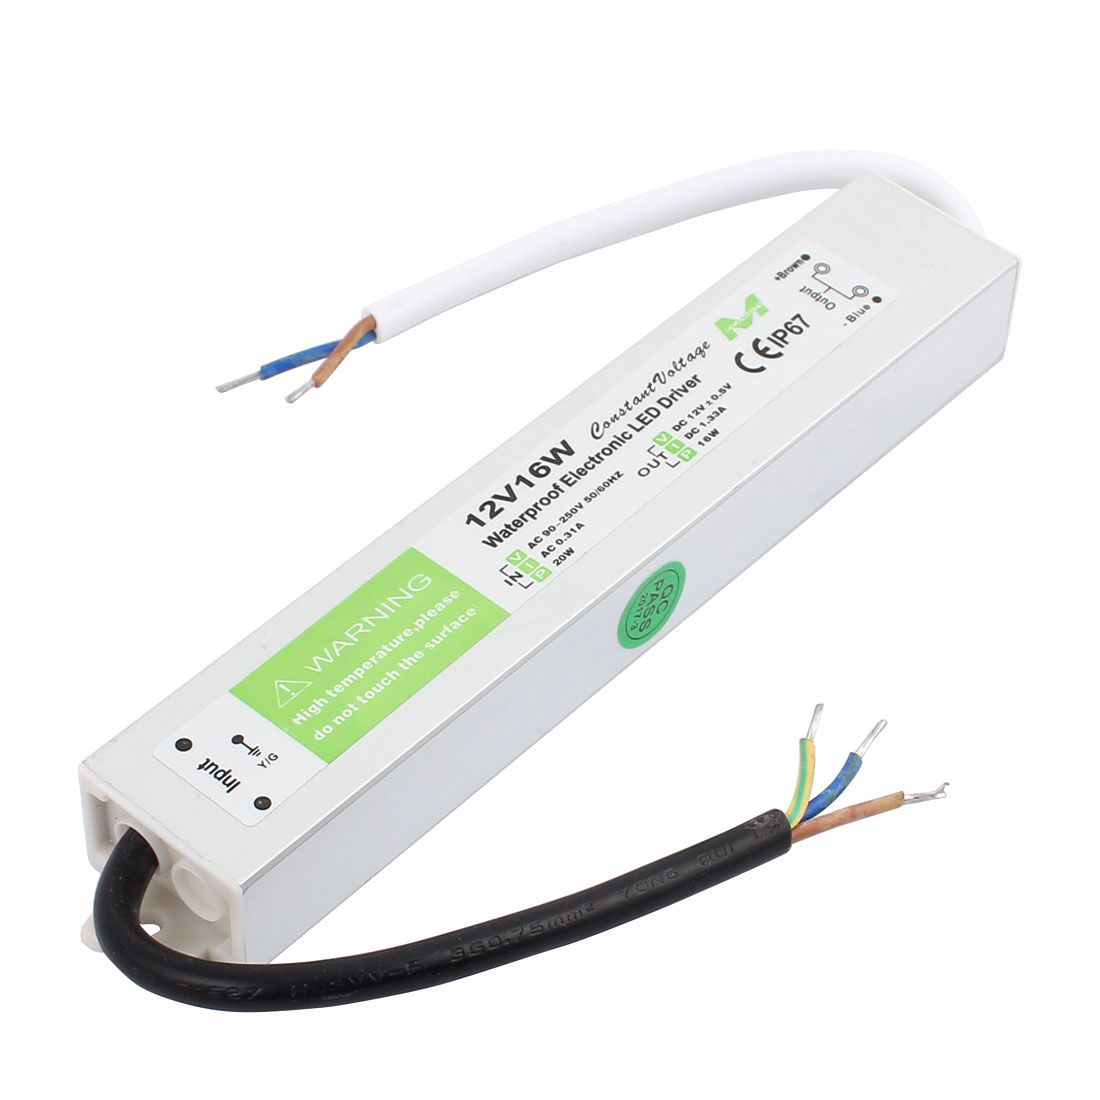 AC90~250V to DC12V 16 Watt Transformer IP67 Waterproof LED Driver Power Supply